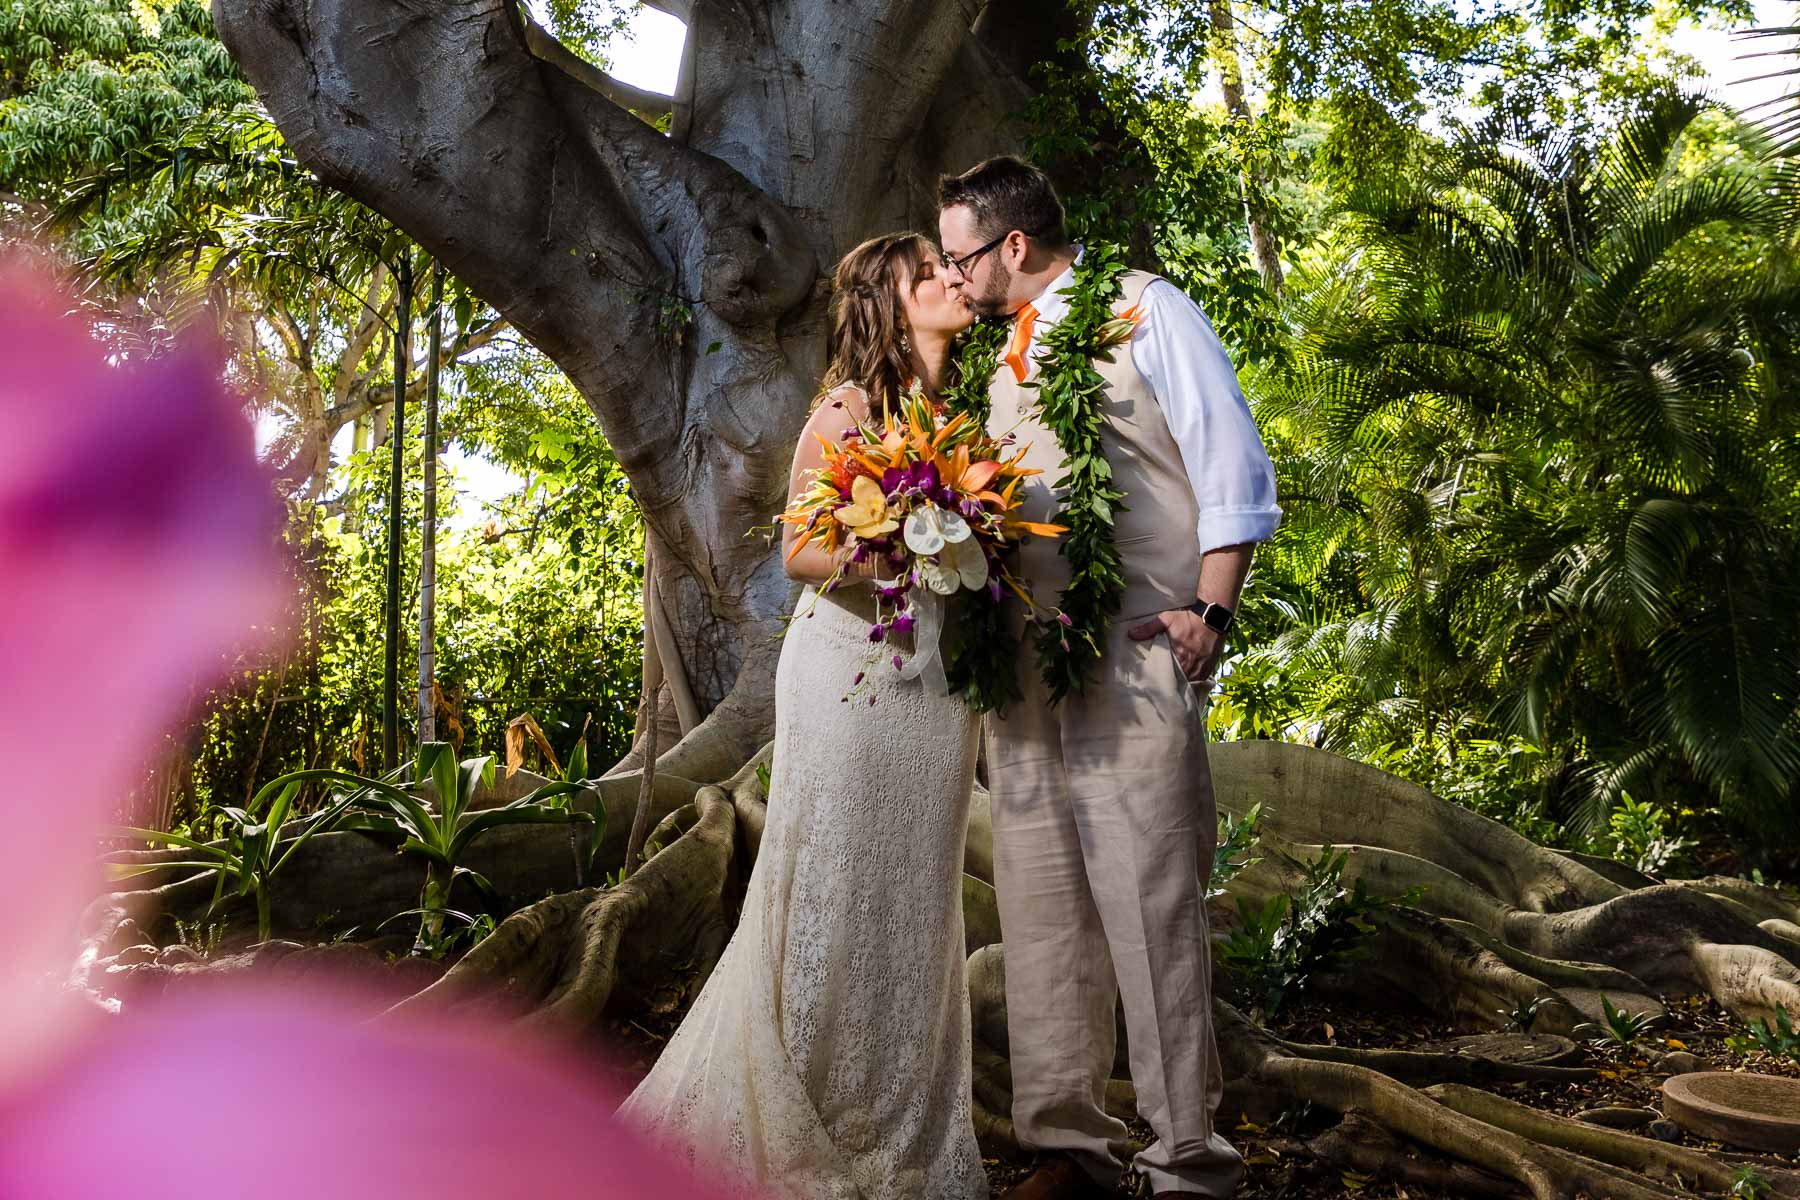 backyard garden wedding portrait of bride and groom flowers trees